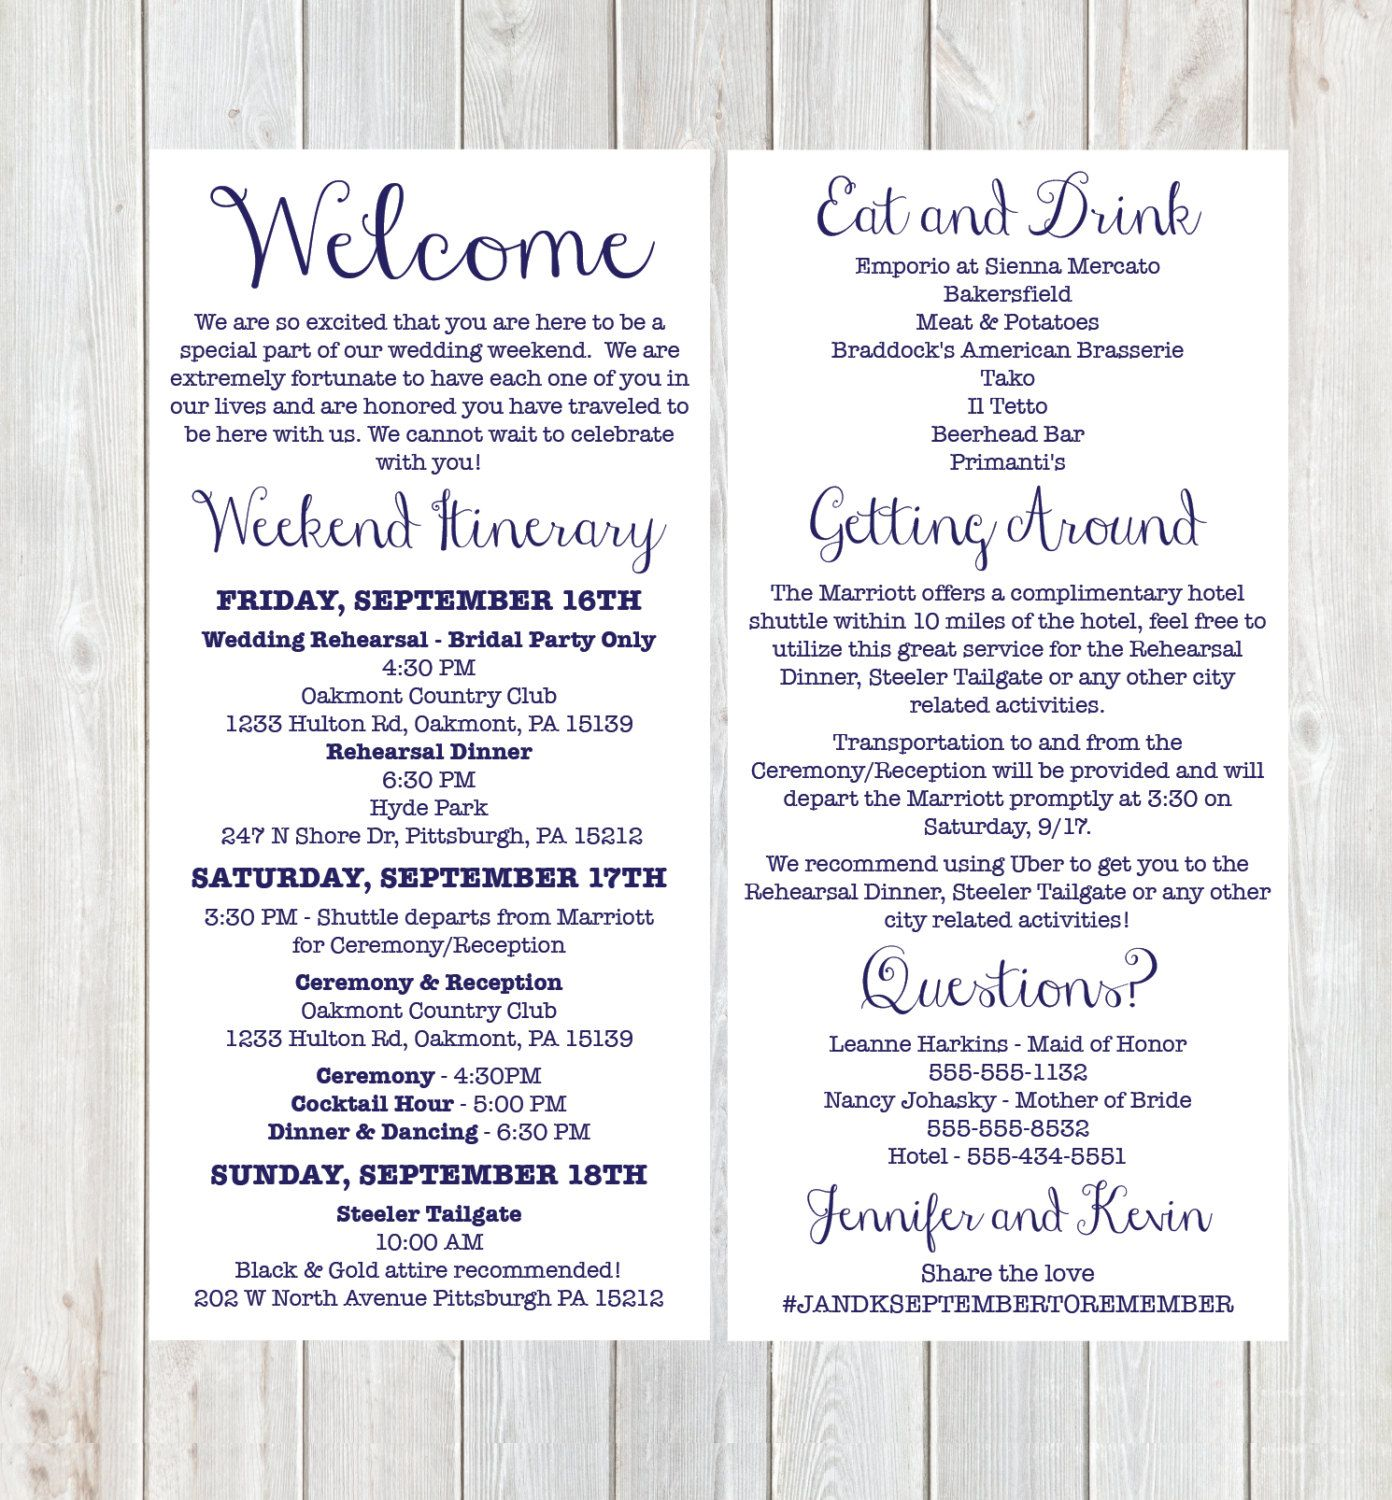 Wedding Itinerary Weekend Itinerary Wedding Welcome Welcome